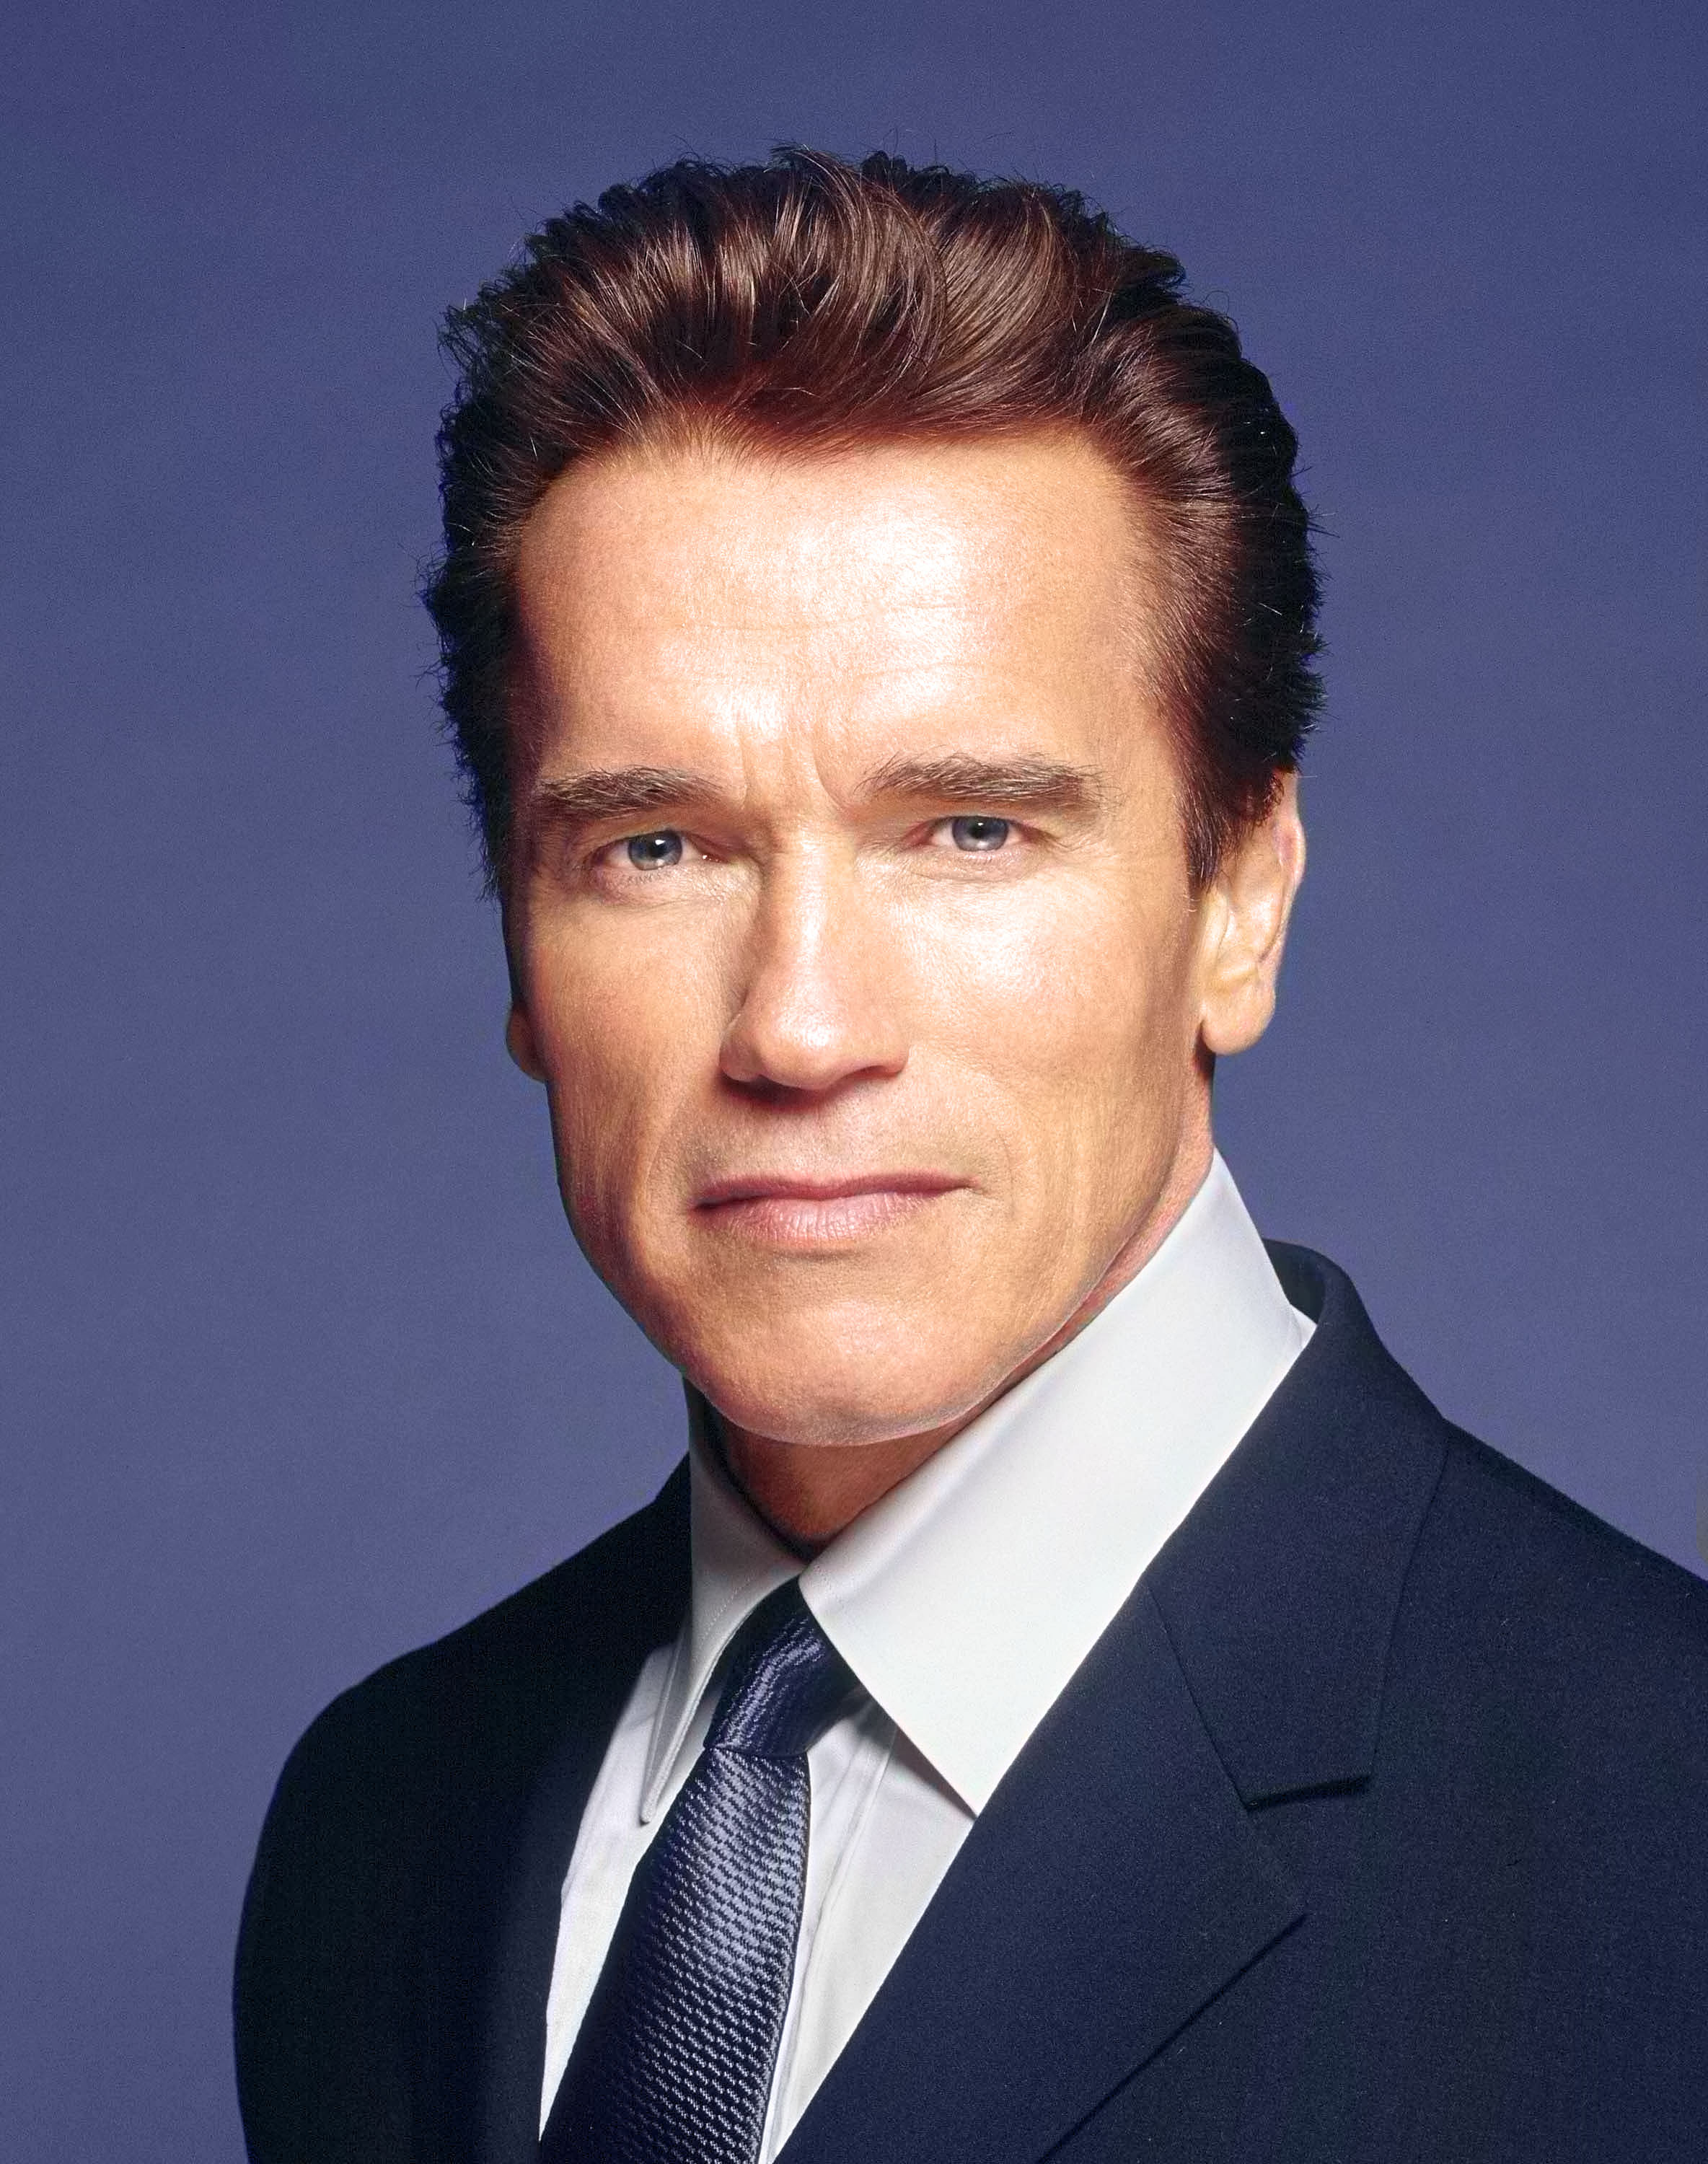 Arnold Schwarzenegger, 38th Governor of California (2003-2011) A. Schwarzenegger.jpg